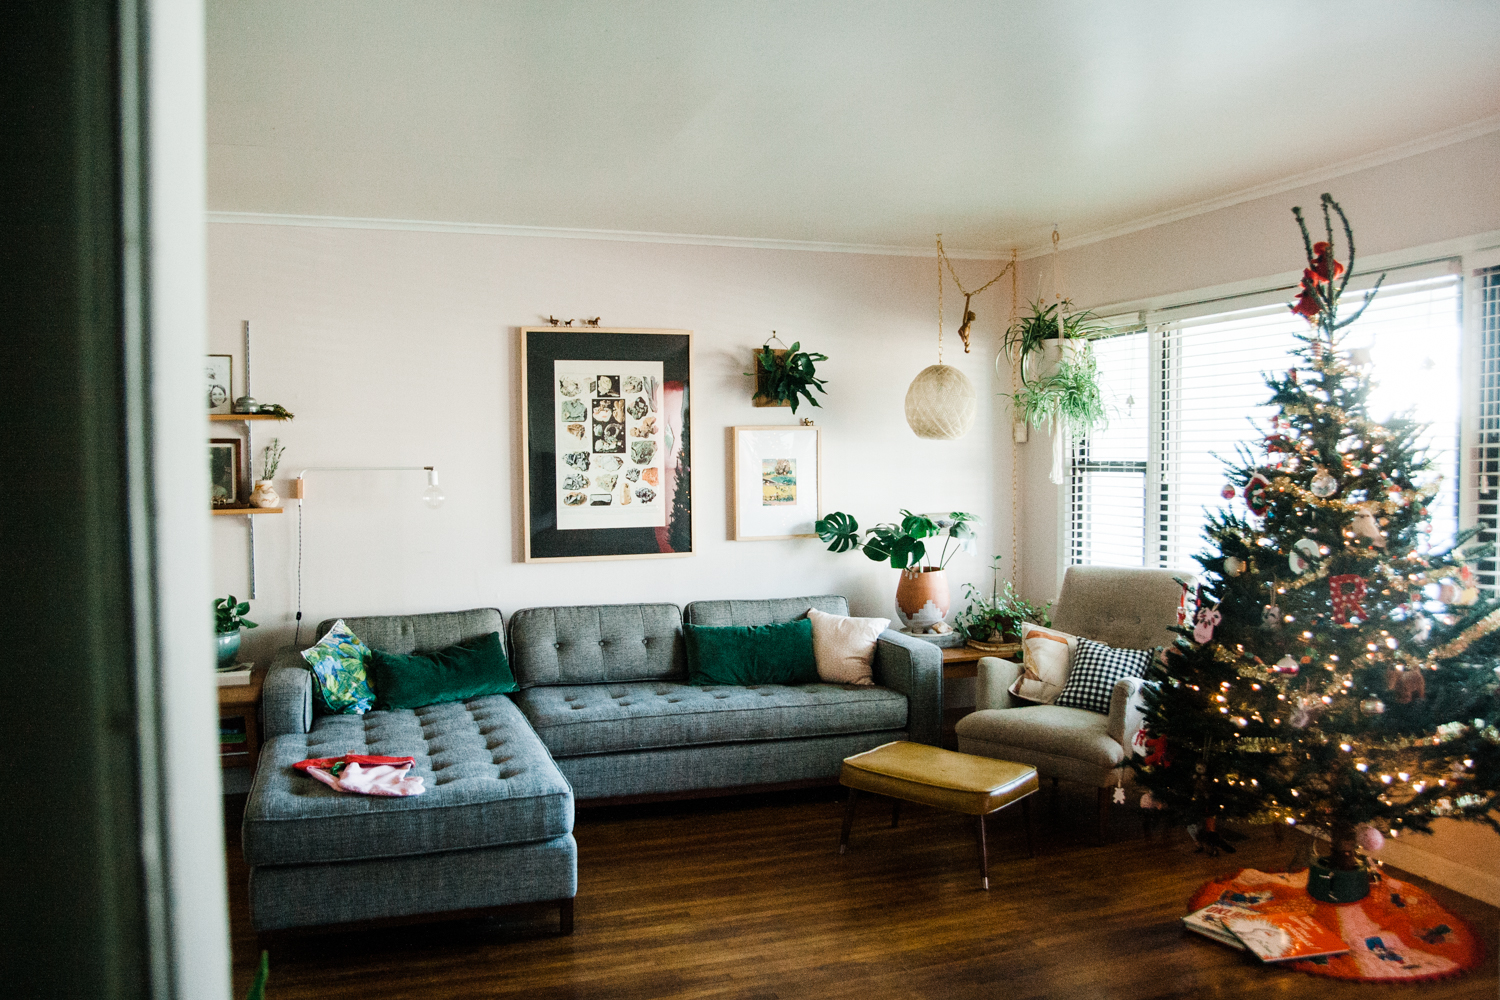 """Our tree skirt was made by my husband's grandmother, Mimi, Alma Lee Daly. And that book under the tree is """"How the Grinch Stole Christmas,"""" which my dad read to me every year and substituted my name in on Cindy-Lou-Who's part. """"Ashley-Lou-Who who was barely 33."""""""